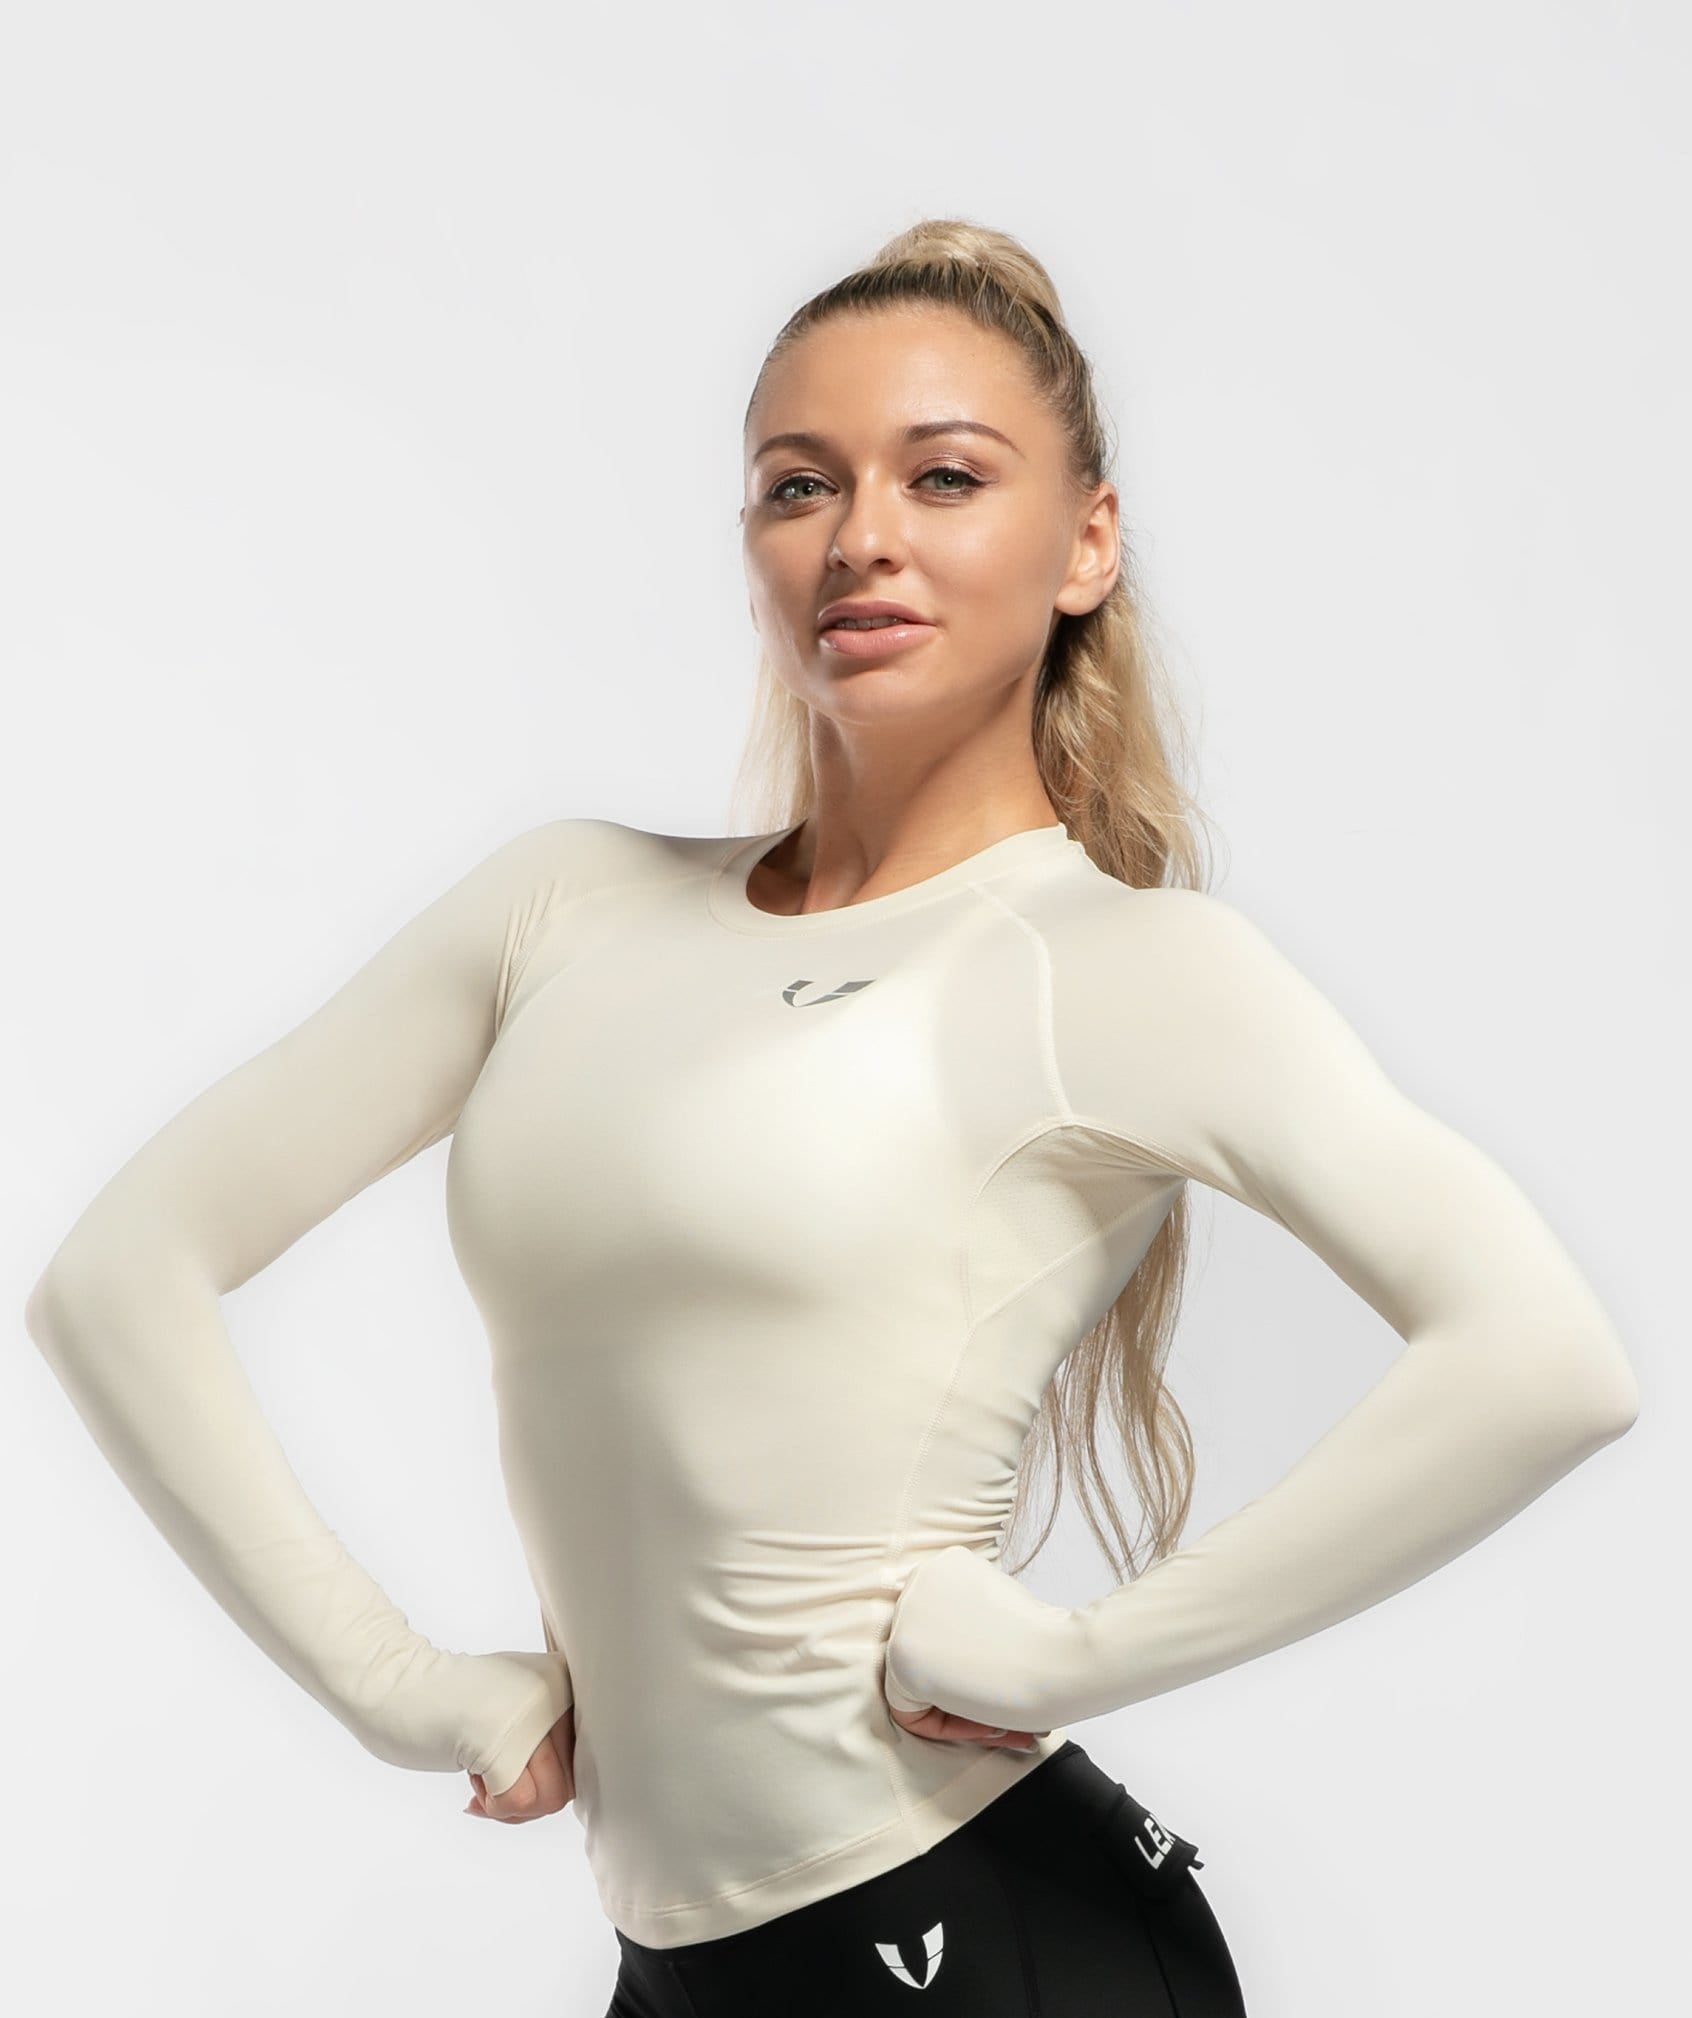 Firmabs Pure Long Sleeve Shirt - Firm Abs Fitness